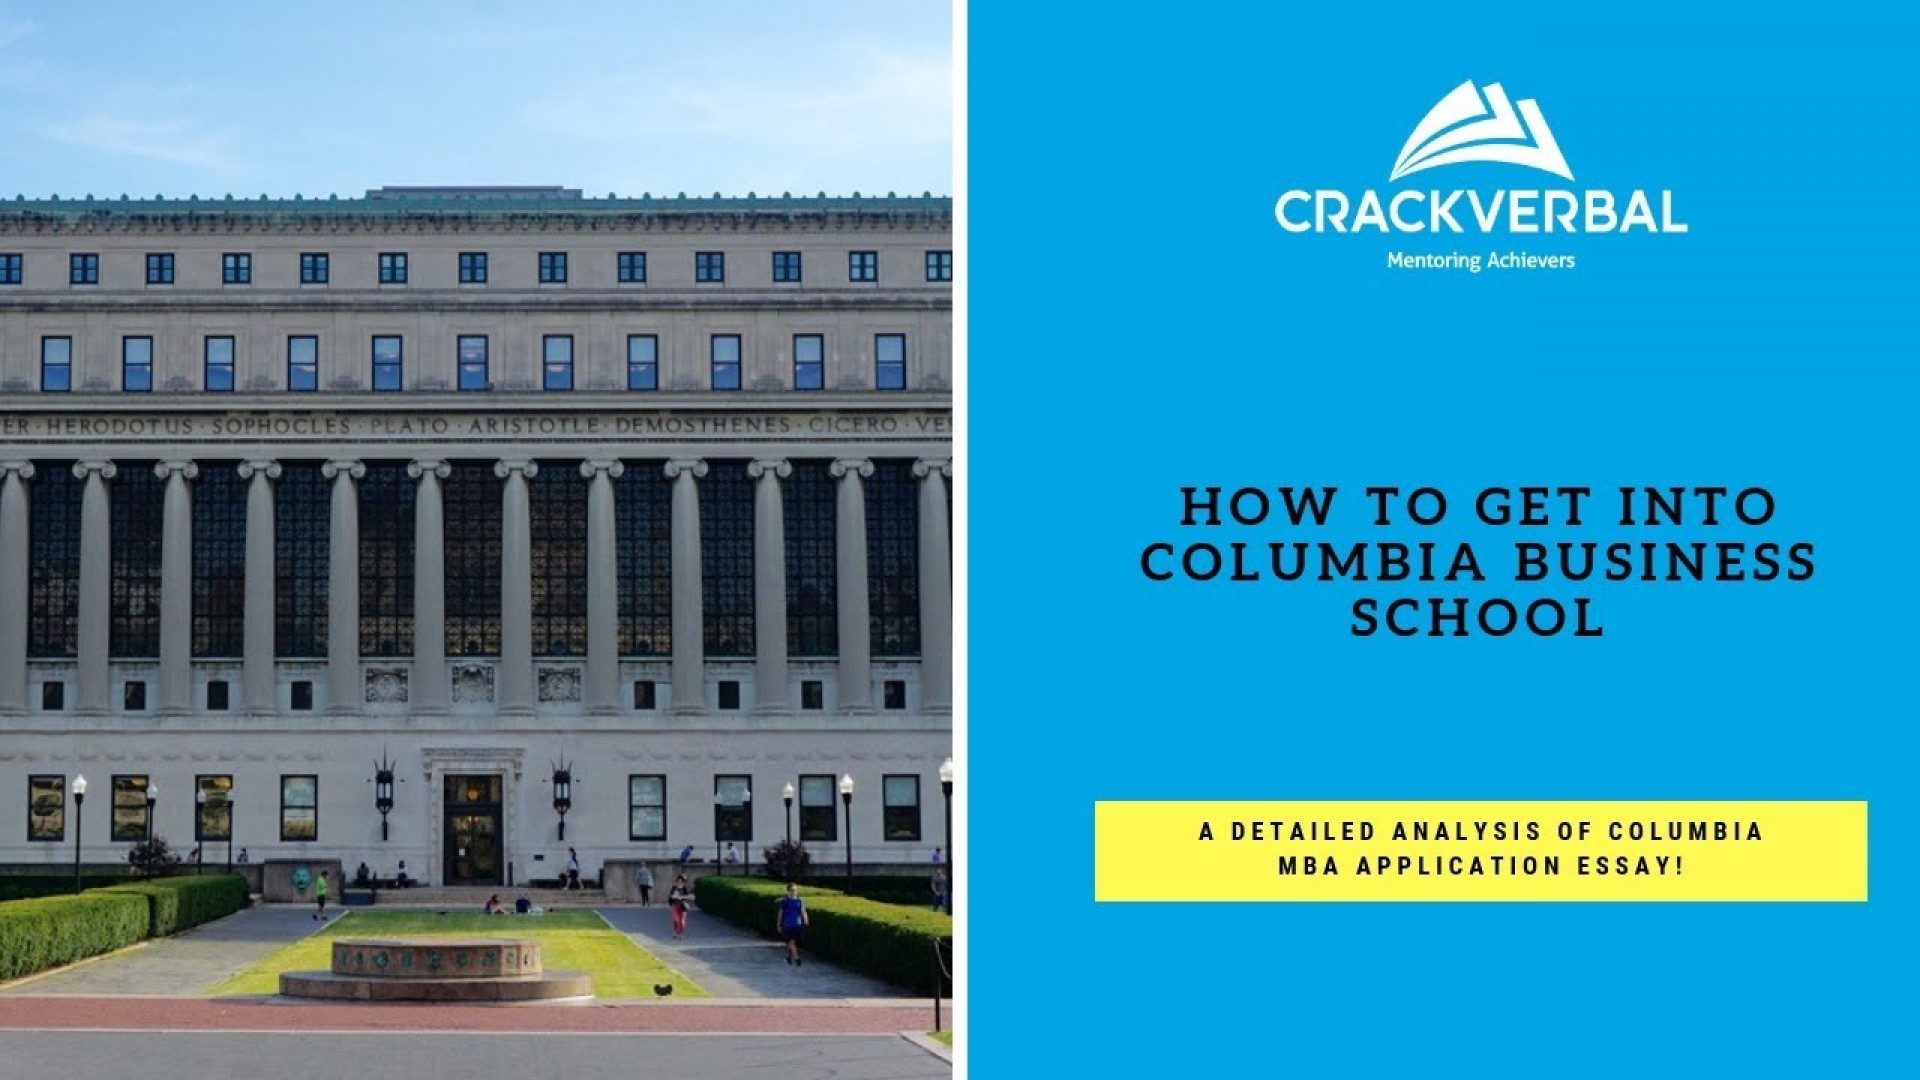 018 Maxresdefault Essay Example Columbia Wonderful University Application Tips Prompt Supplement Examples 1920